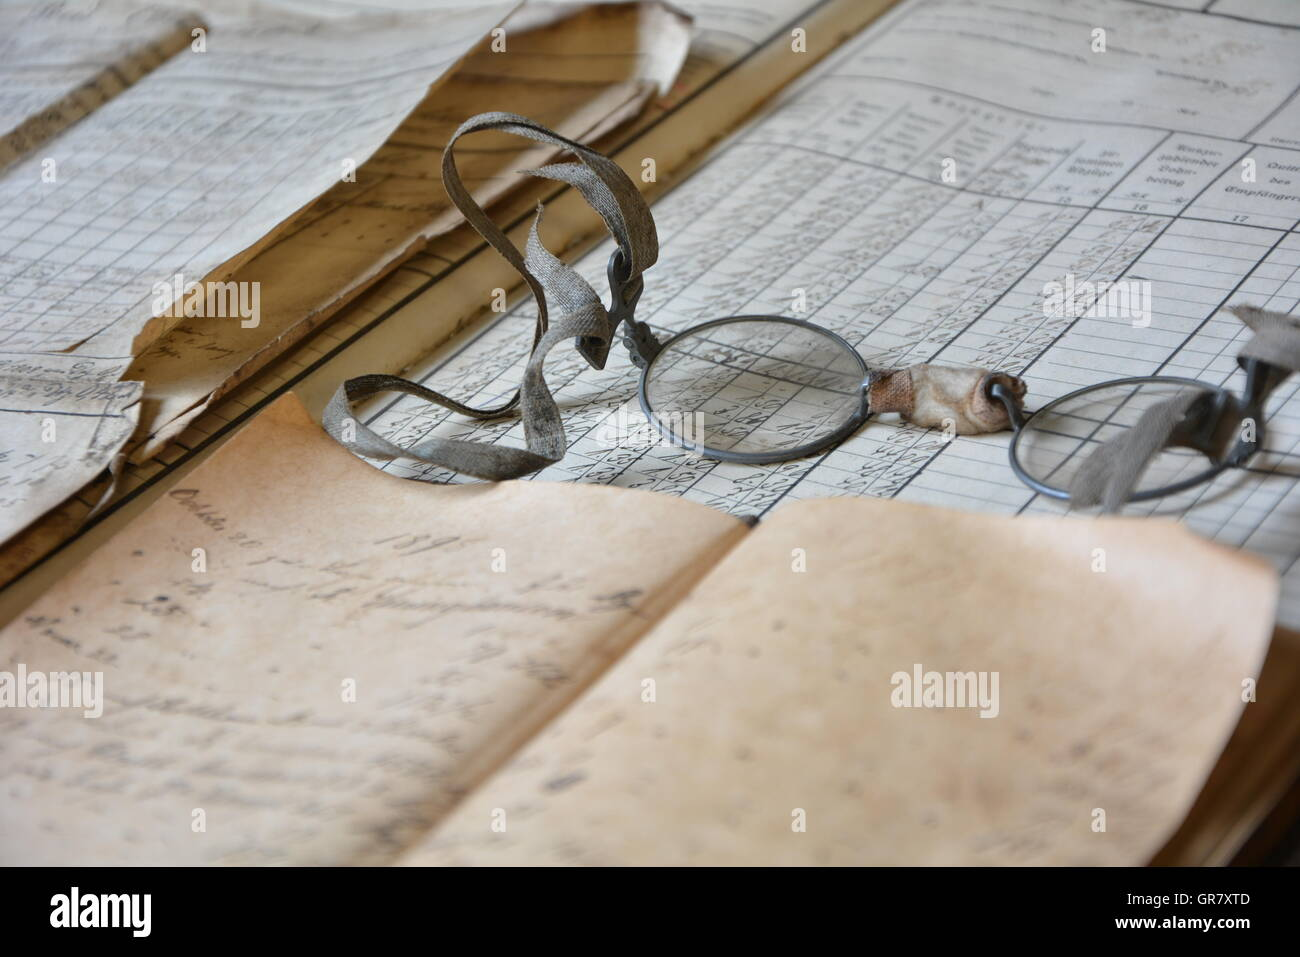 Old, Hand-Written Book With Monocle - Stock Image